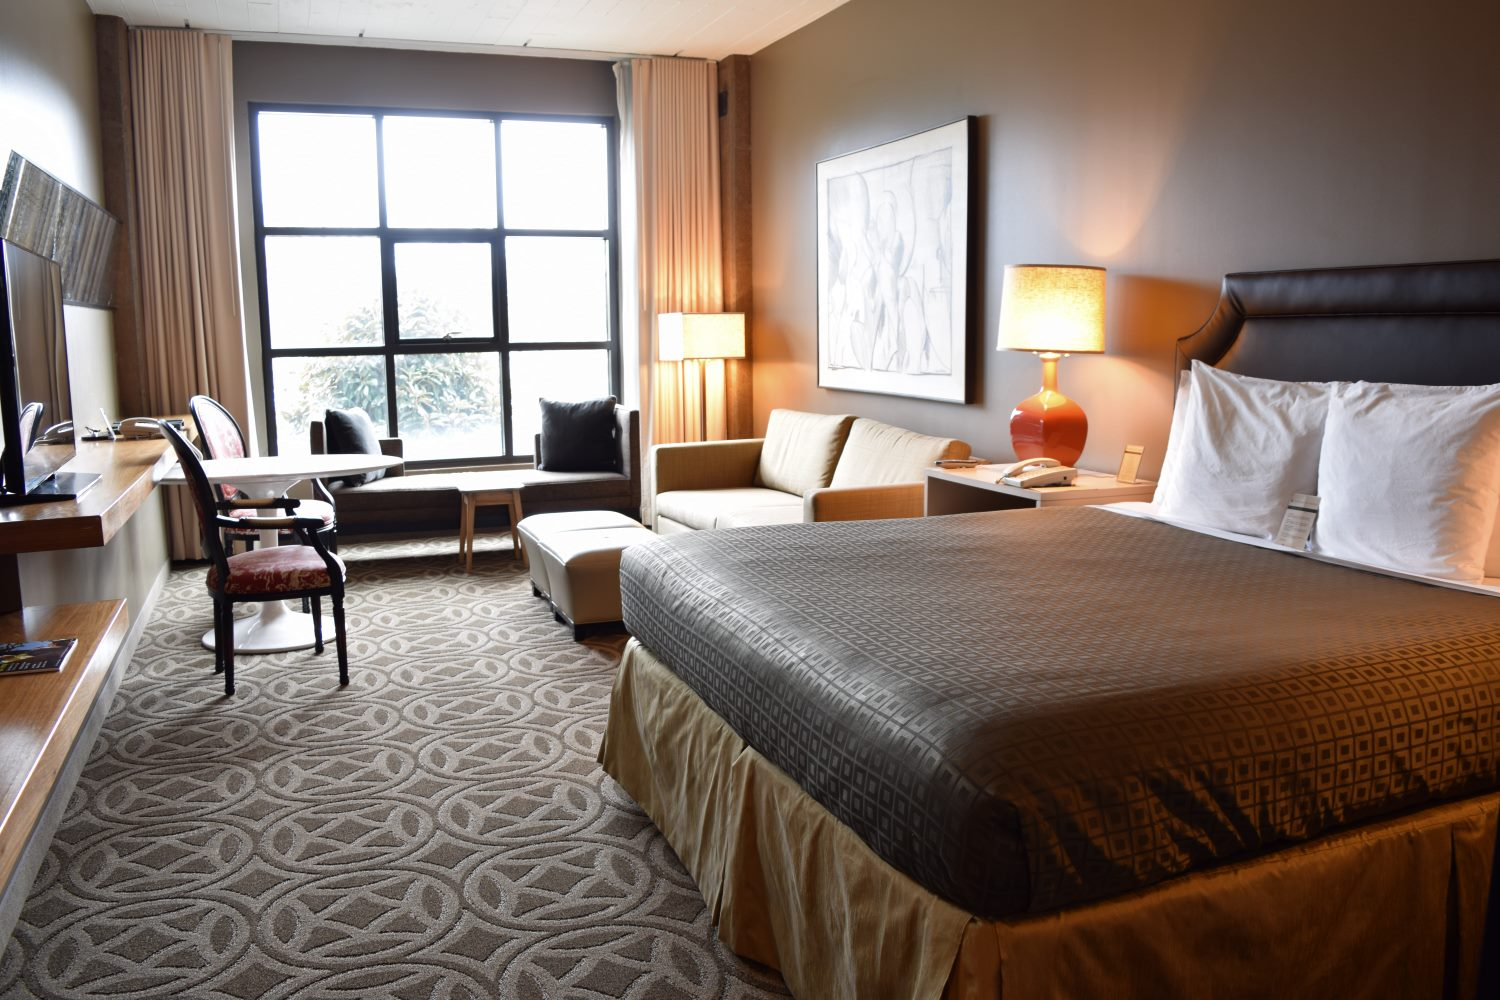 Proximity Hotel Guest Room In Greensboro, NC